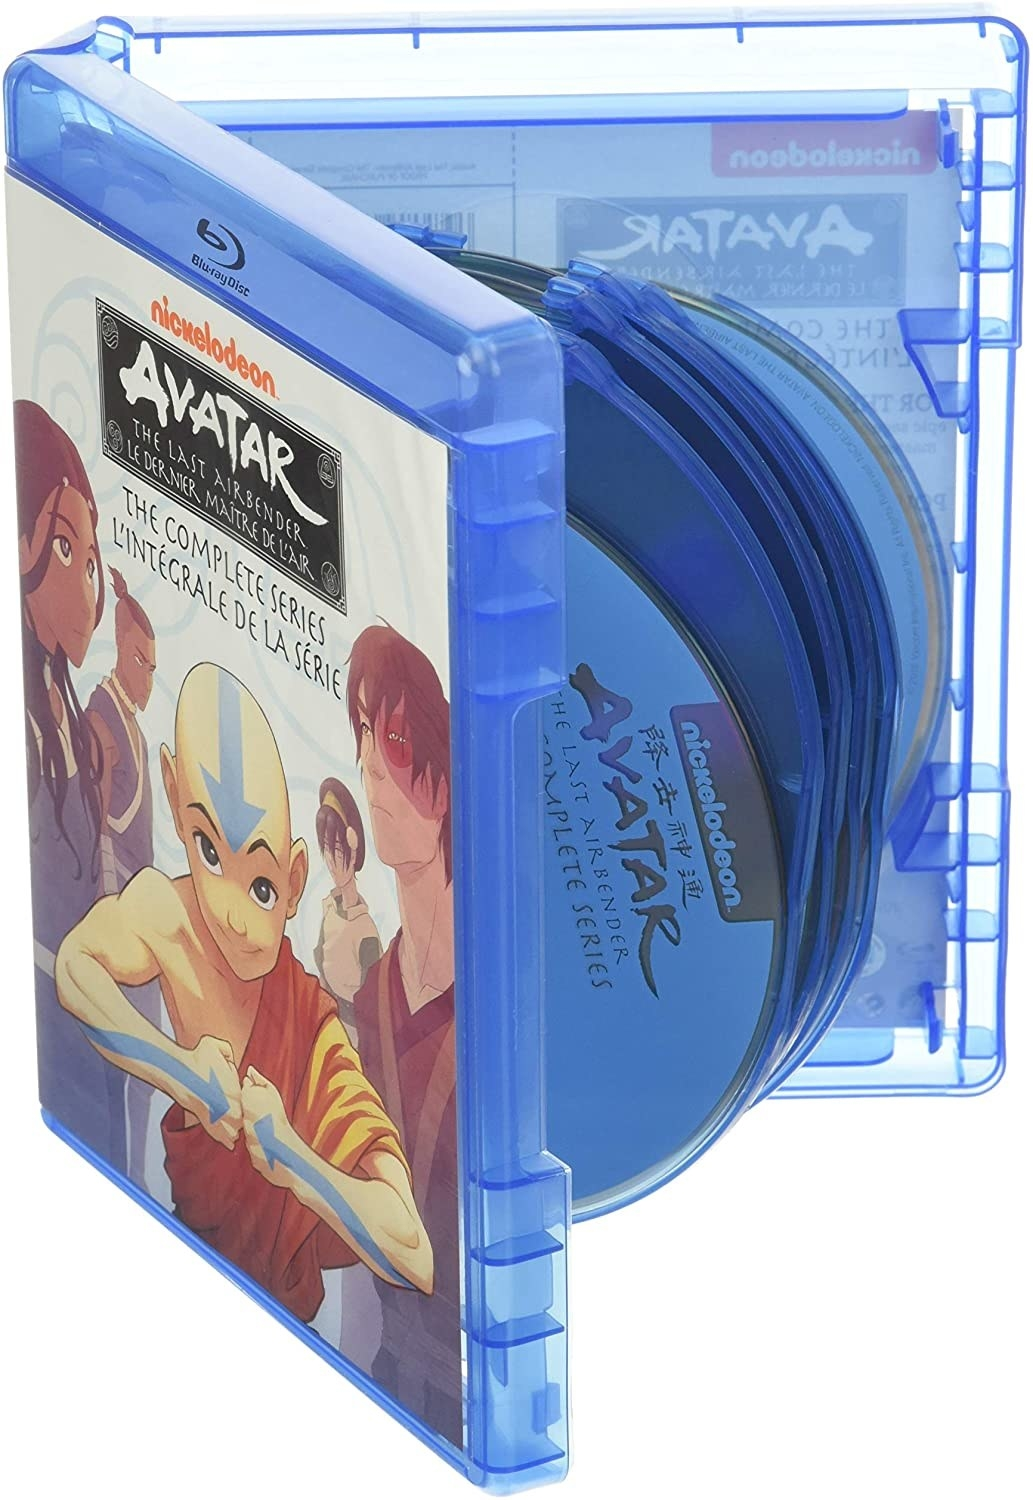 The Blu-ray collection of Avatar: The Last Airbender